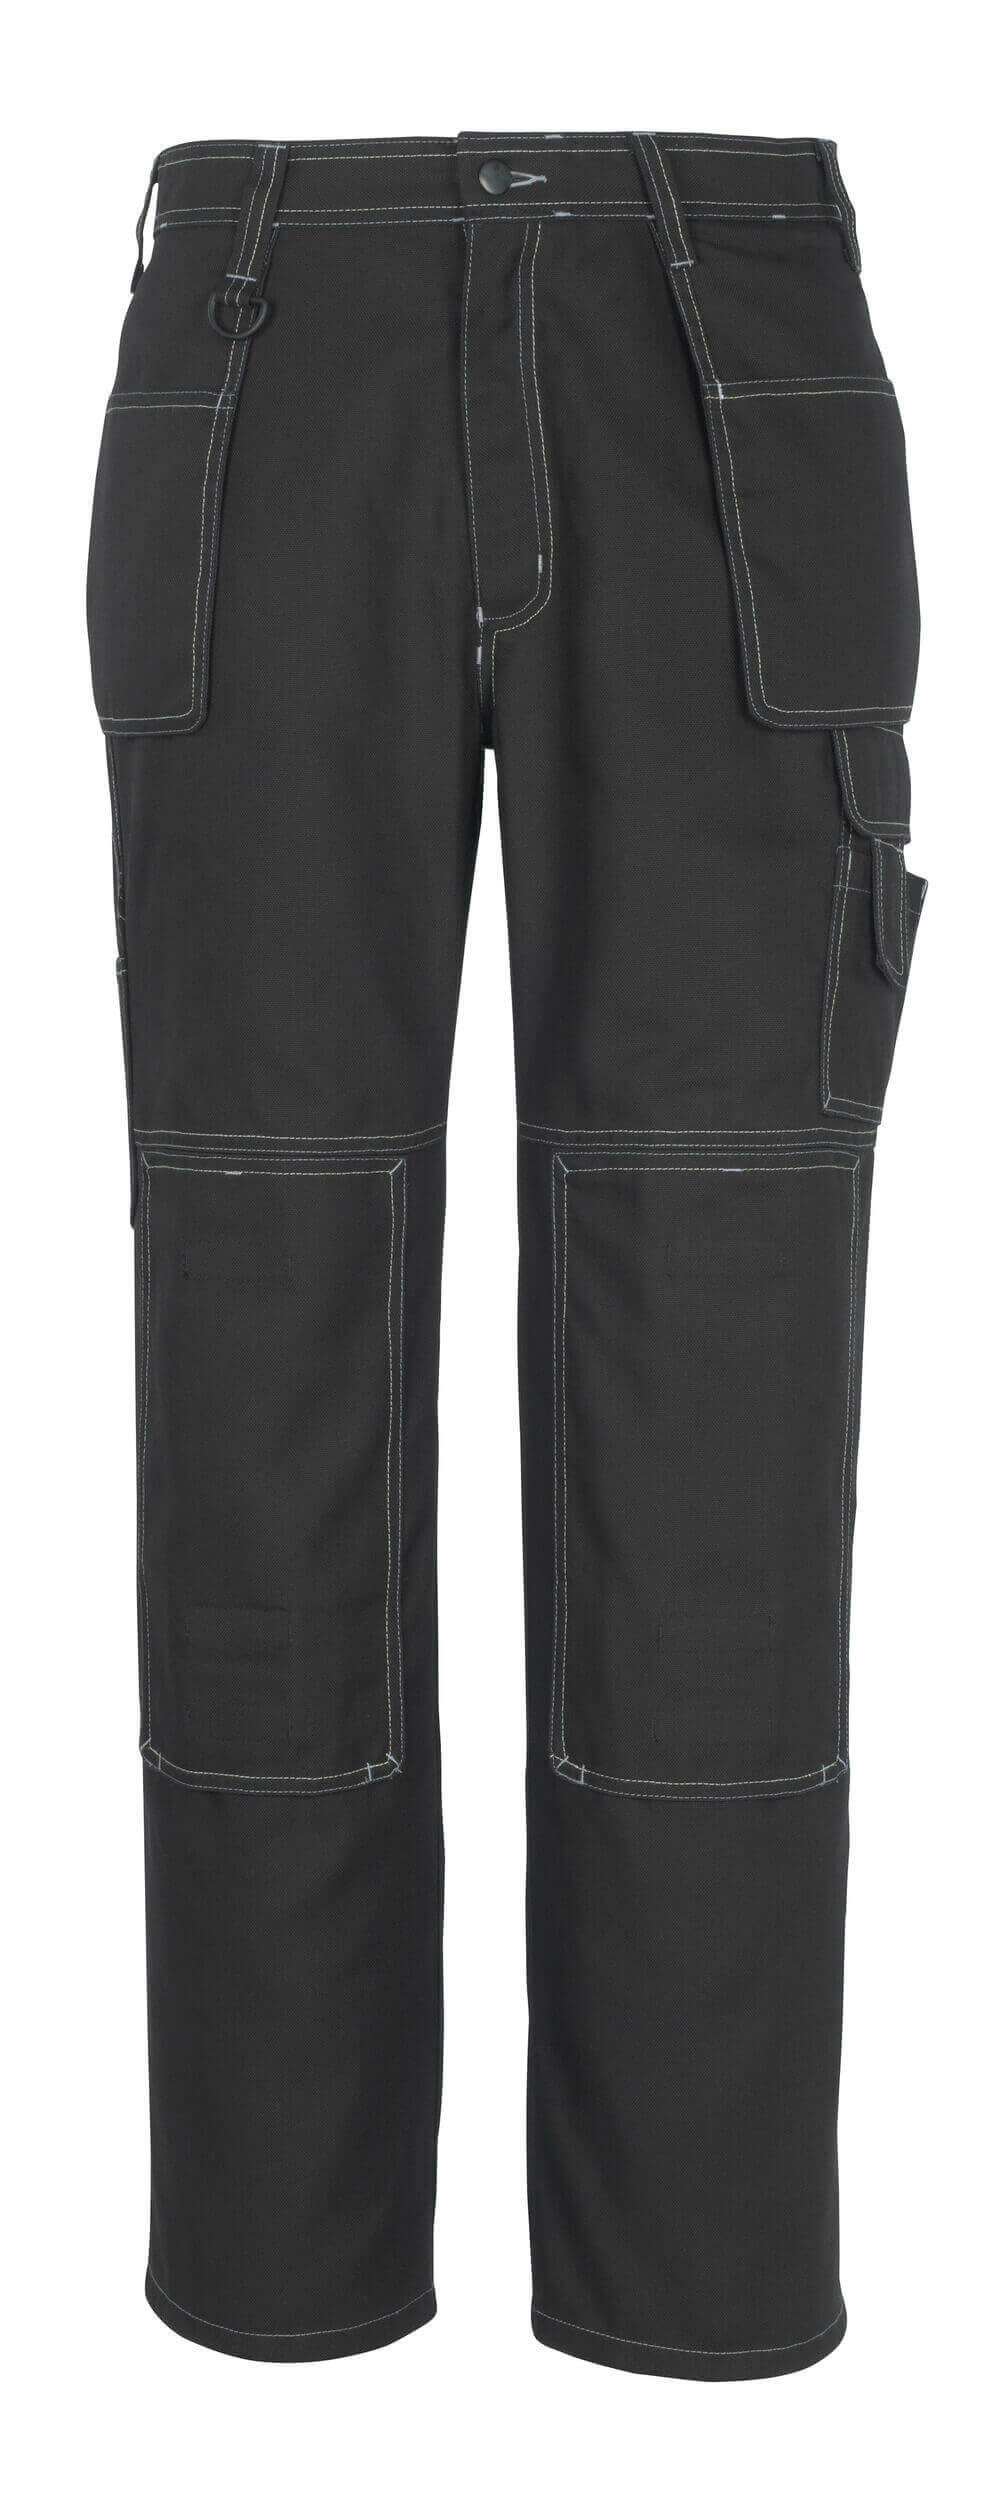 50194-884-09 Trousers with kneepad pockets and holster pockets - black